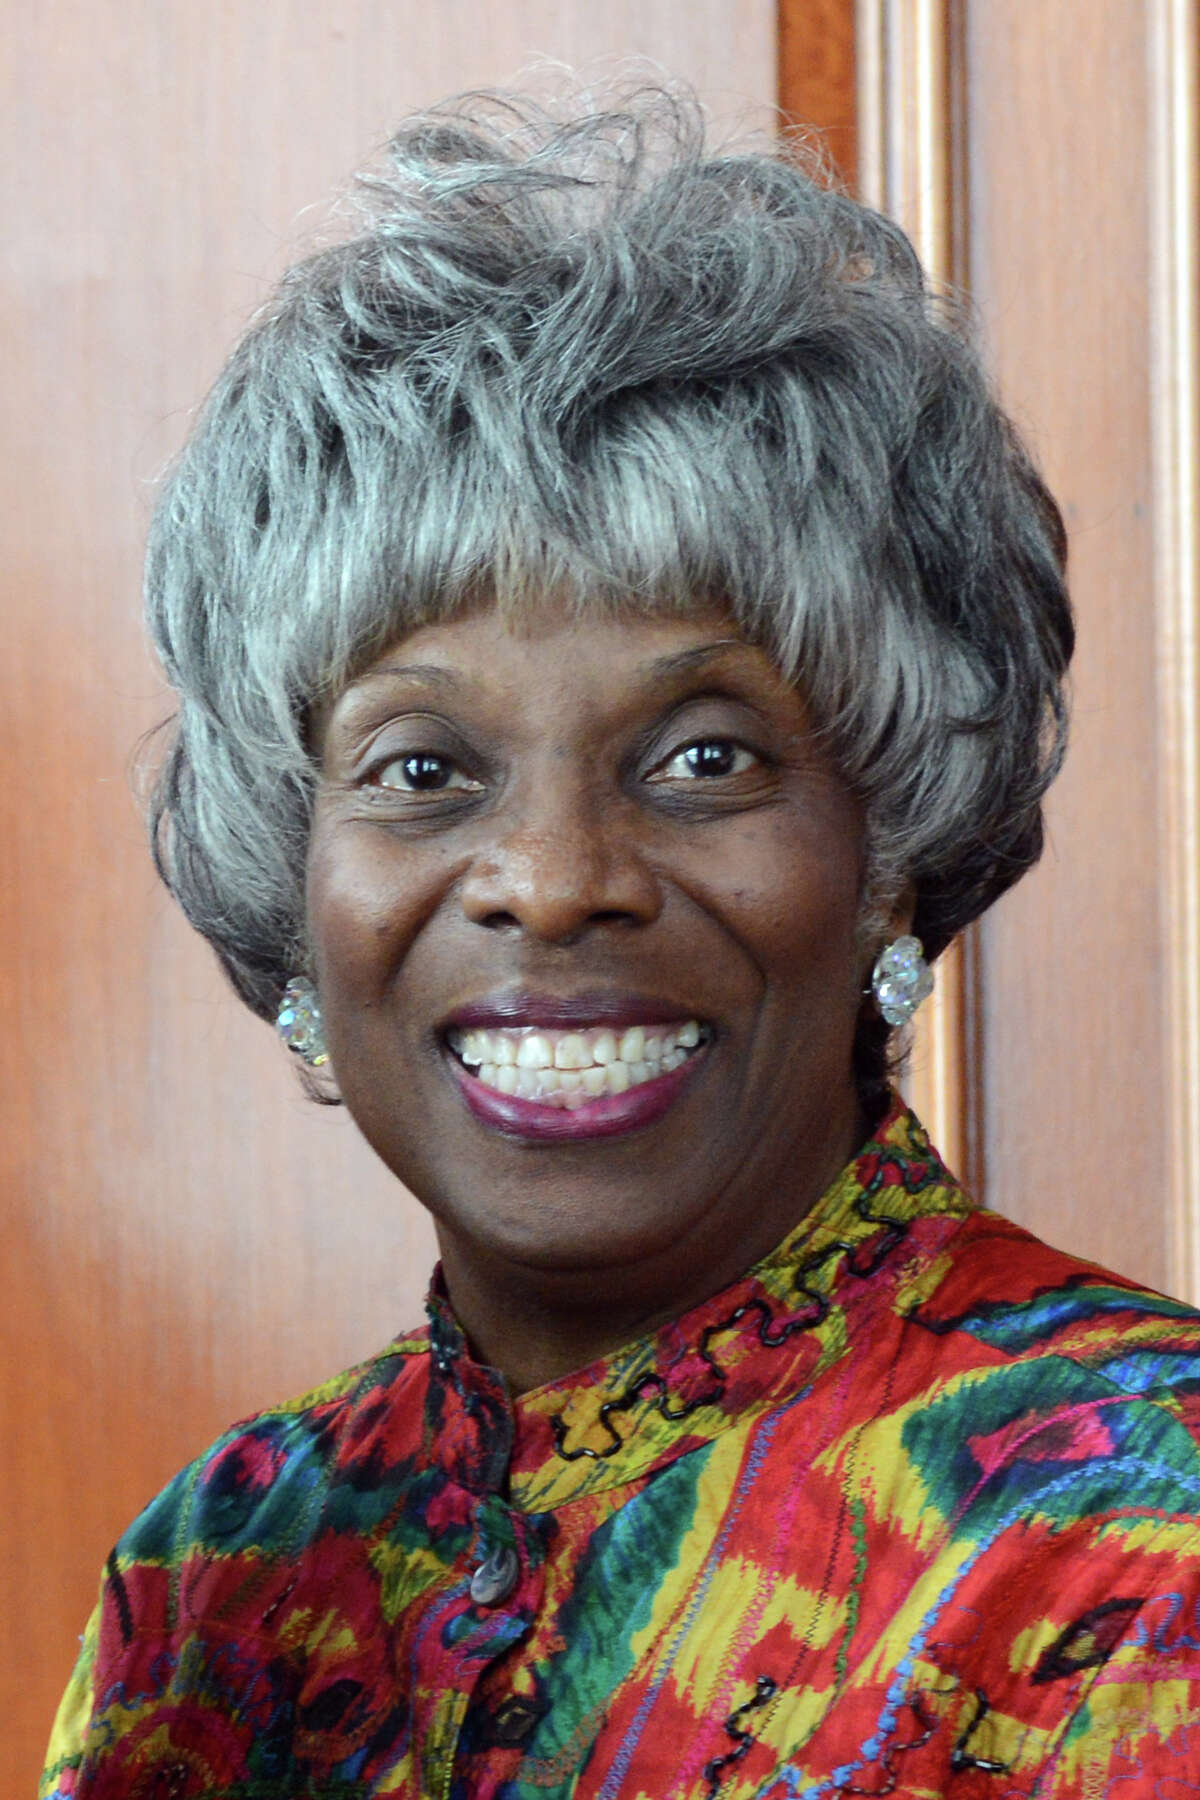 The Prophetess Gerry Claytor, April 9, 2015.